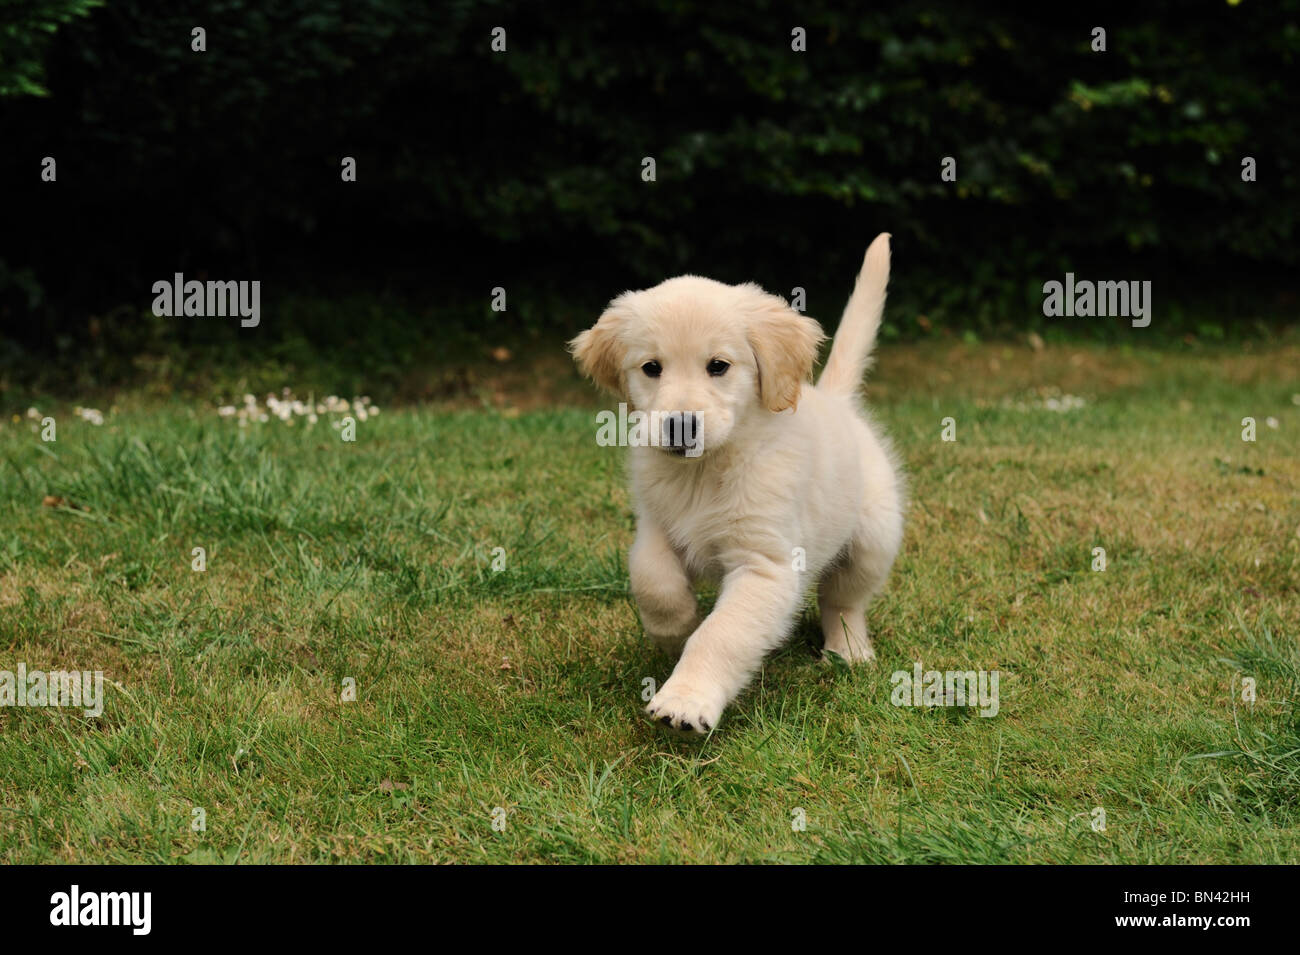 eight-week-old-golden-retriever-puppy-in